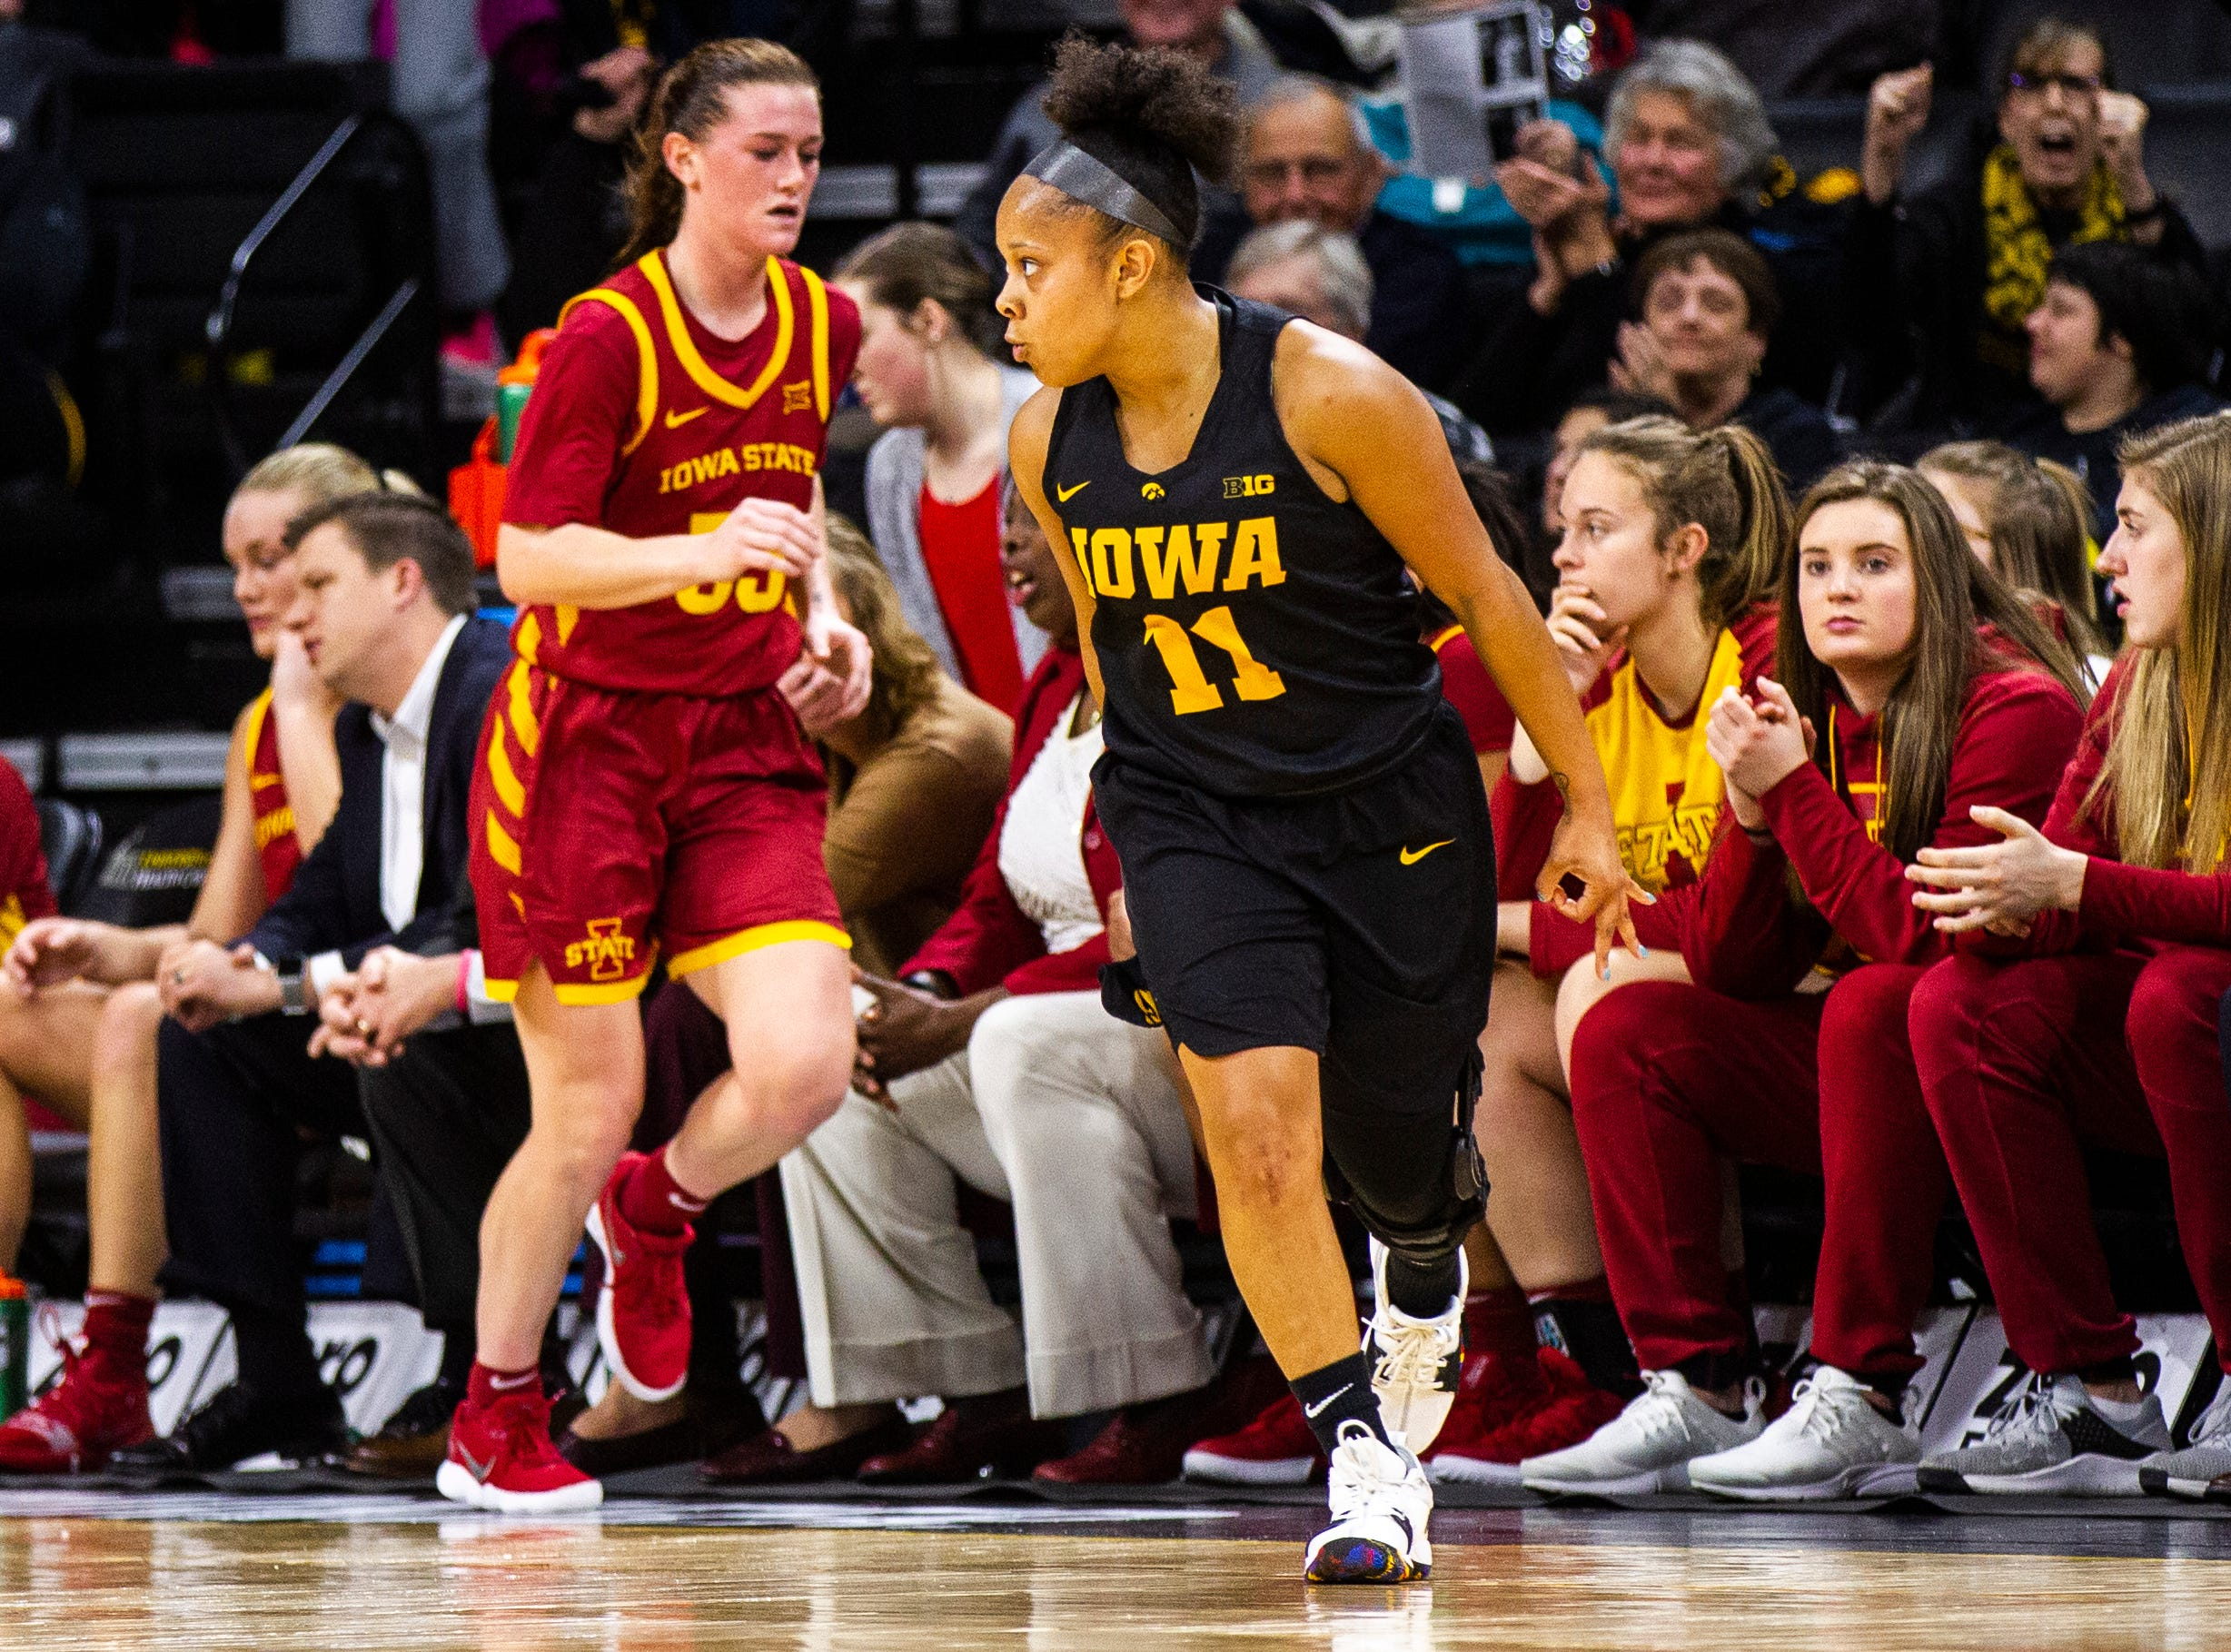 Iowa guard Tania Davis (11) celebrates after making a 3-point basket during a Cy-Hawk series NCAA women's basketball game on Wednesday, Dec. 5, 2018, at Carver-Hawkeye Arena in Iowa City.